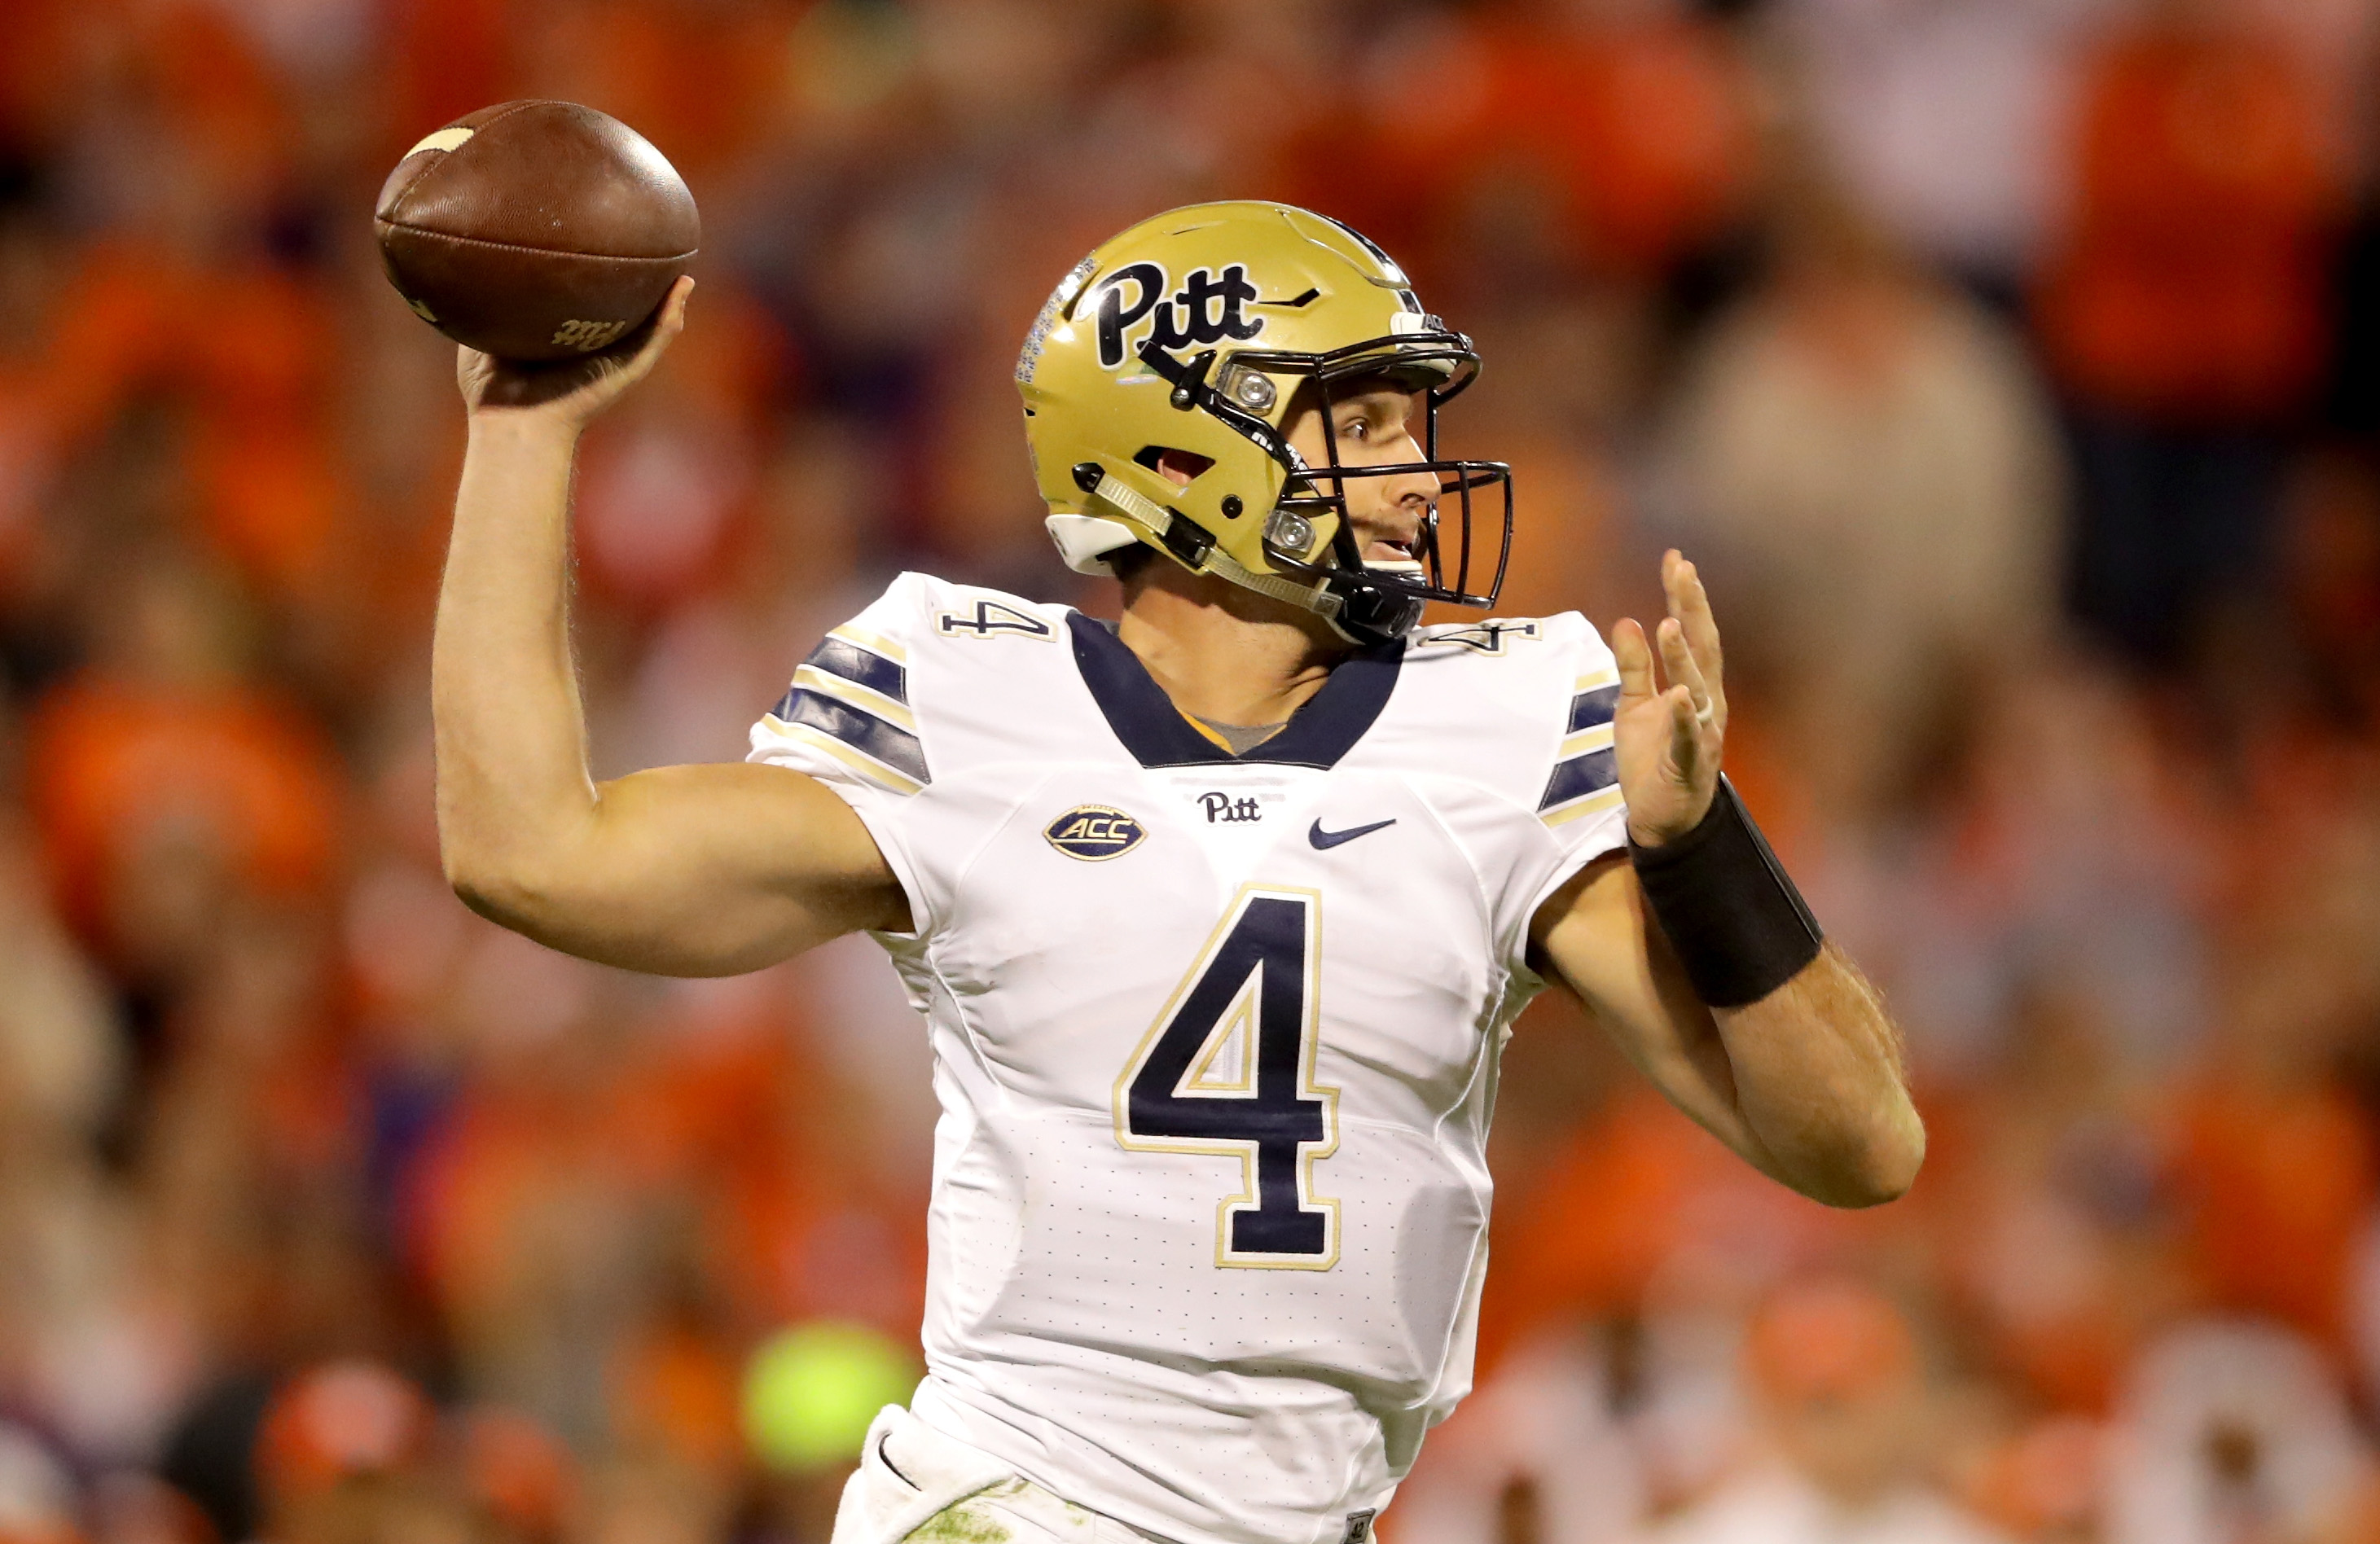 Nathan Peterman led a high-powered Pitt offense in 2016. He averaged 15.43 yards per completion. (Getty Images)